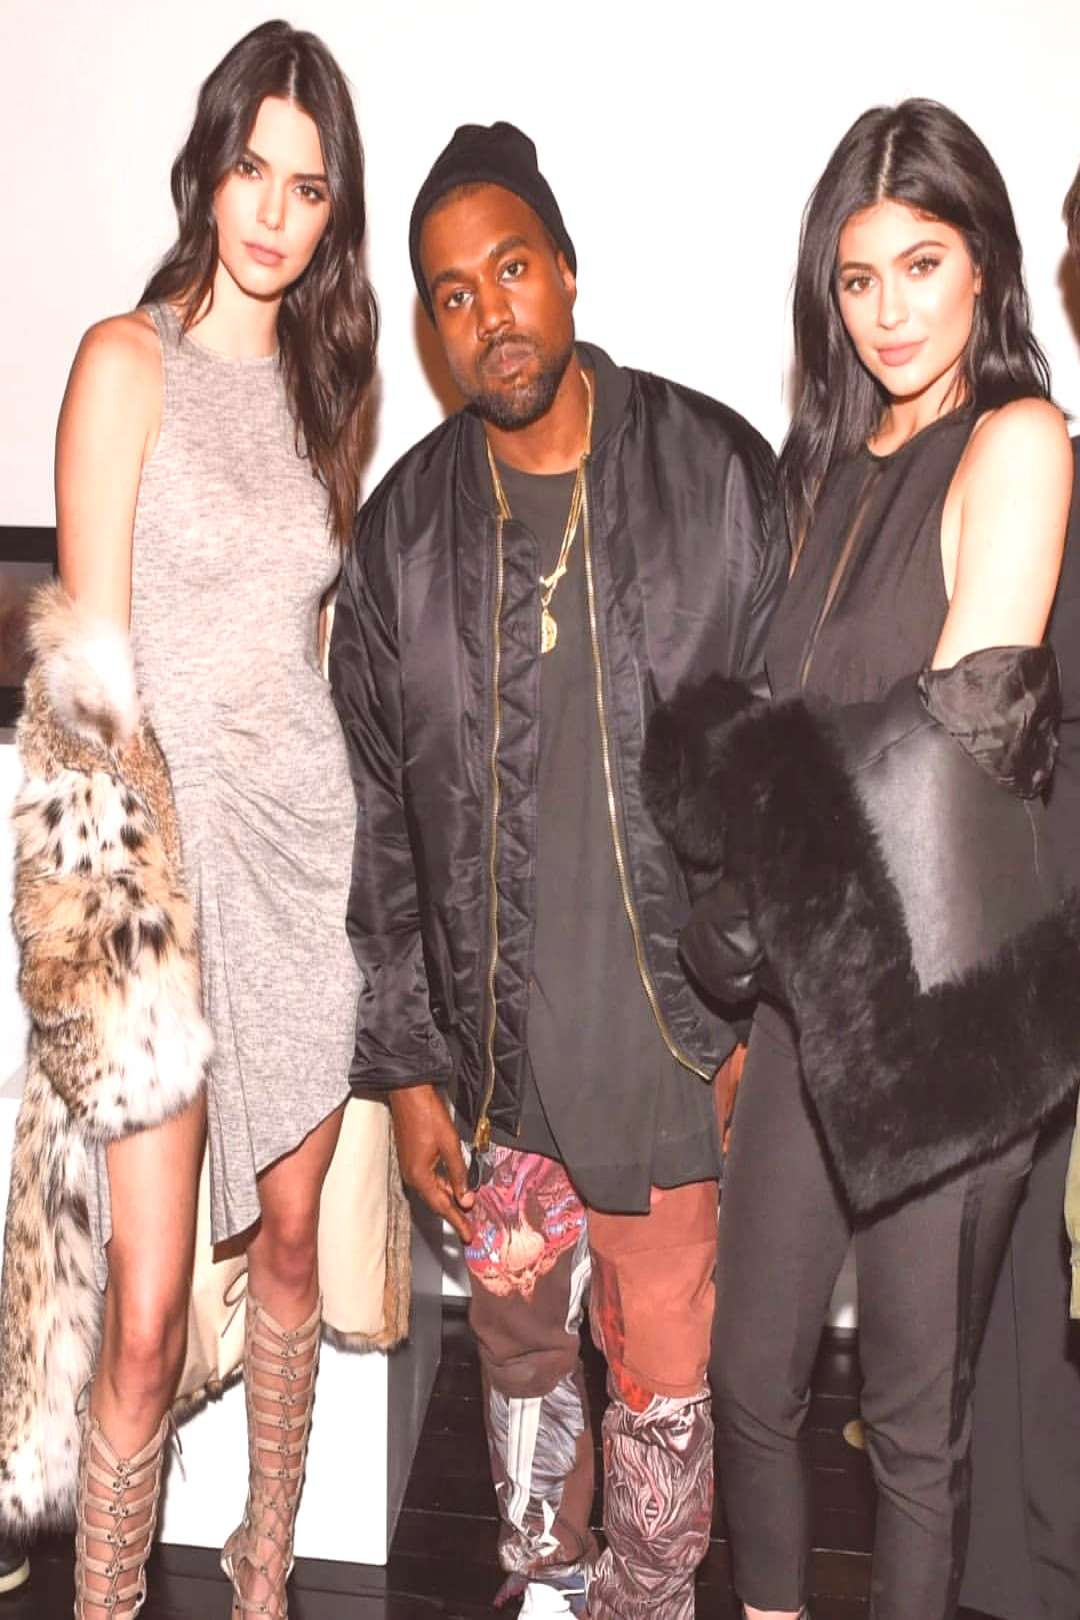 Kendall and Kylie on June 08 2020 and 3 people people standing